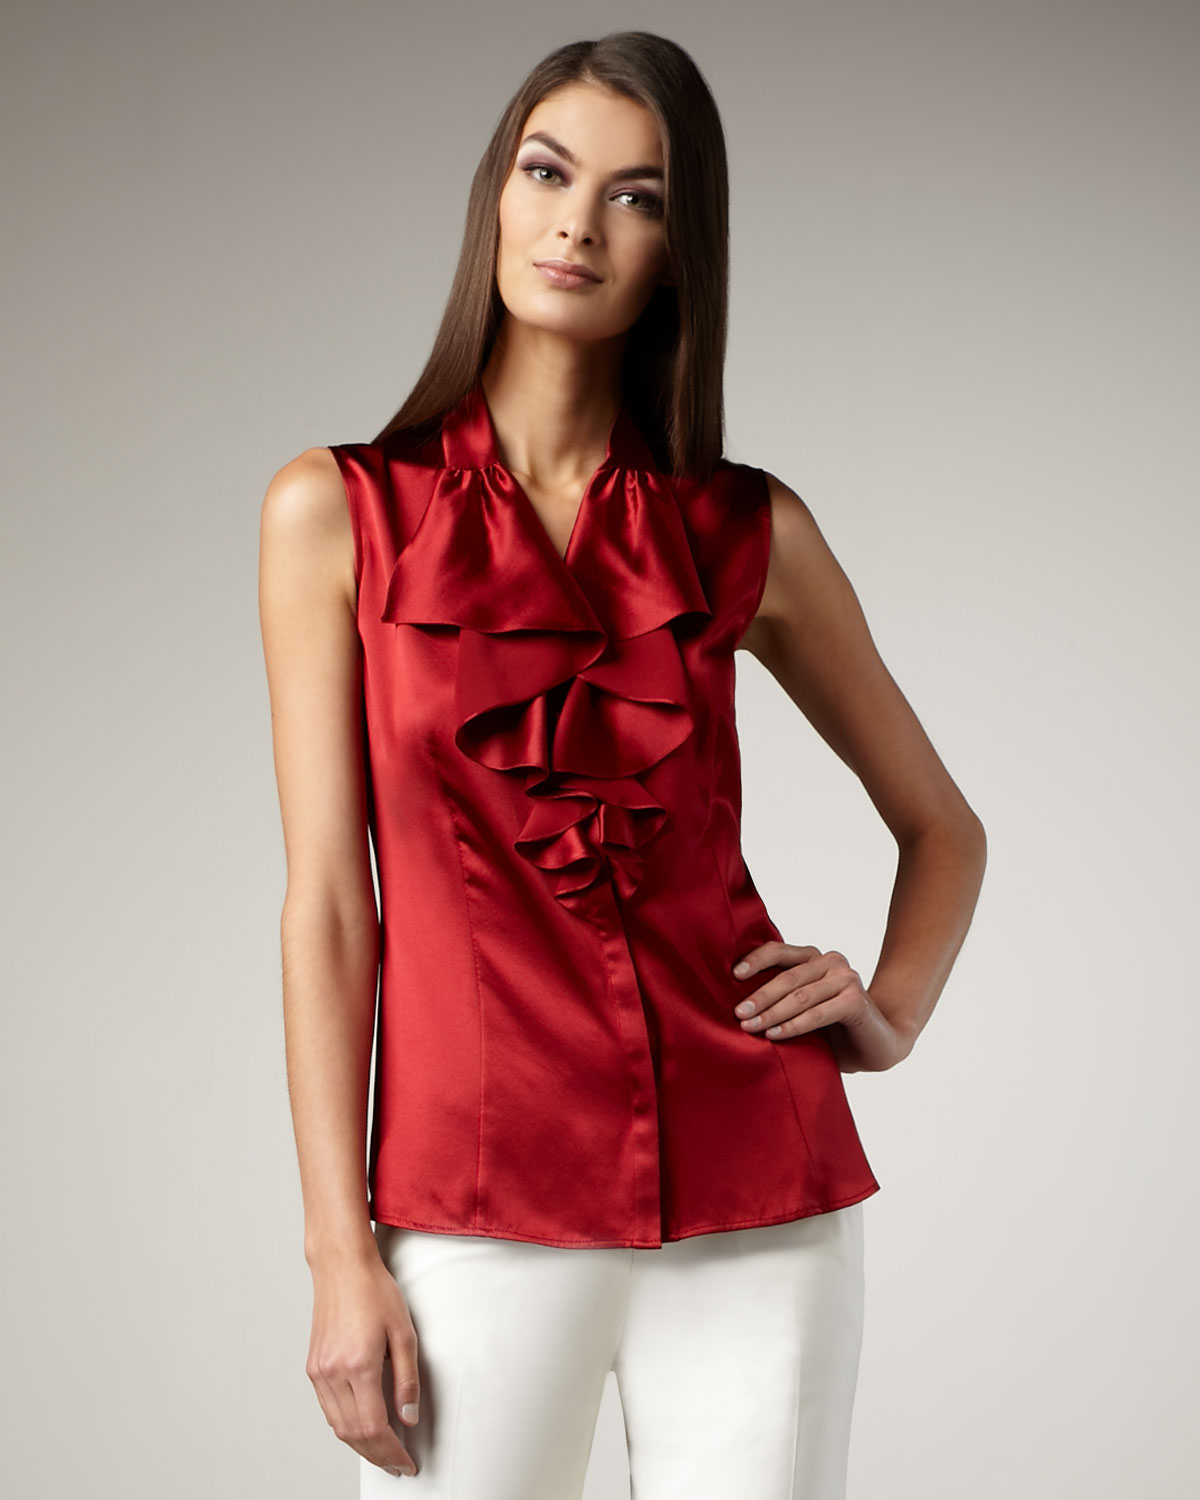 lafayette 148 new york briella ruffled satin blouse in red poppy lyst. Black Bedroom Furniture Sets. Home Design Ideas